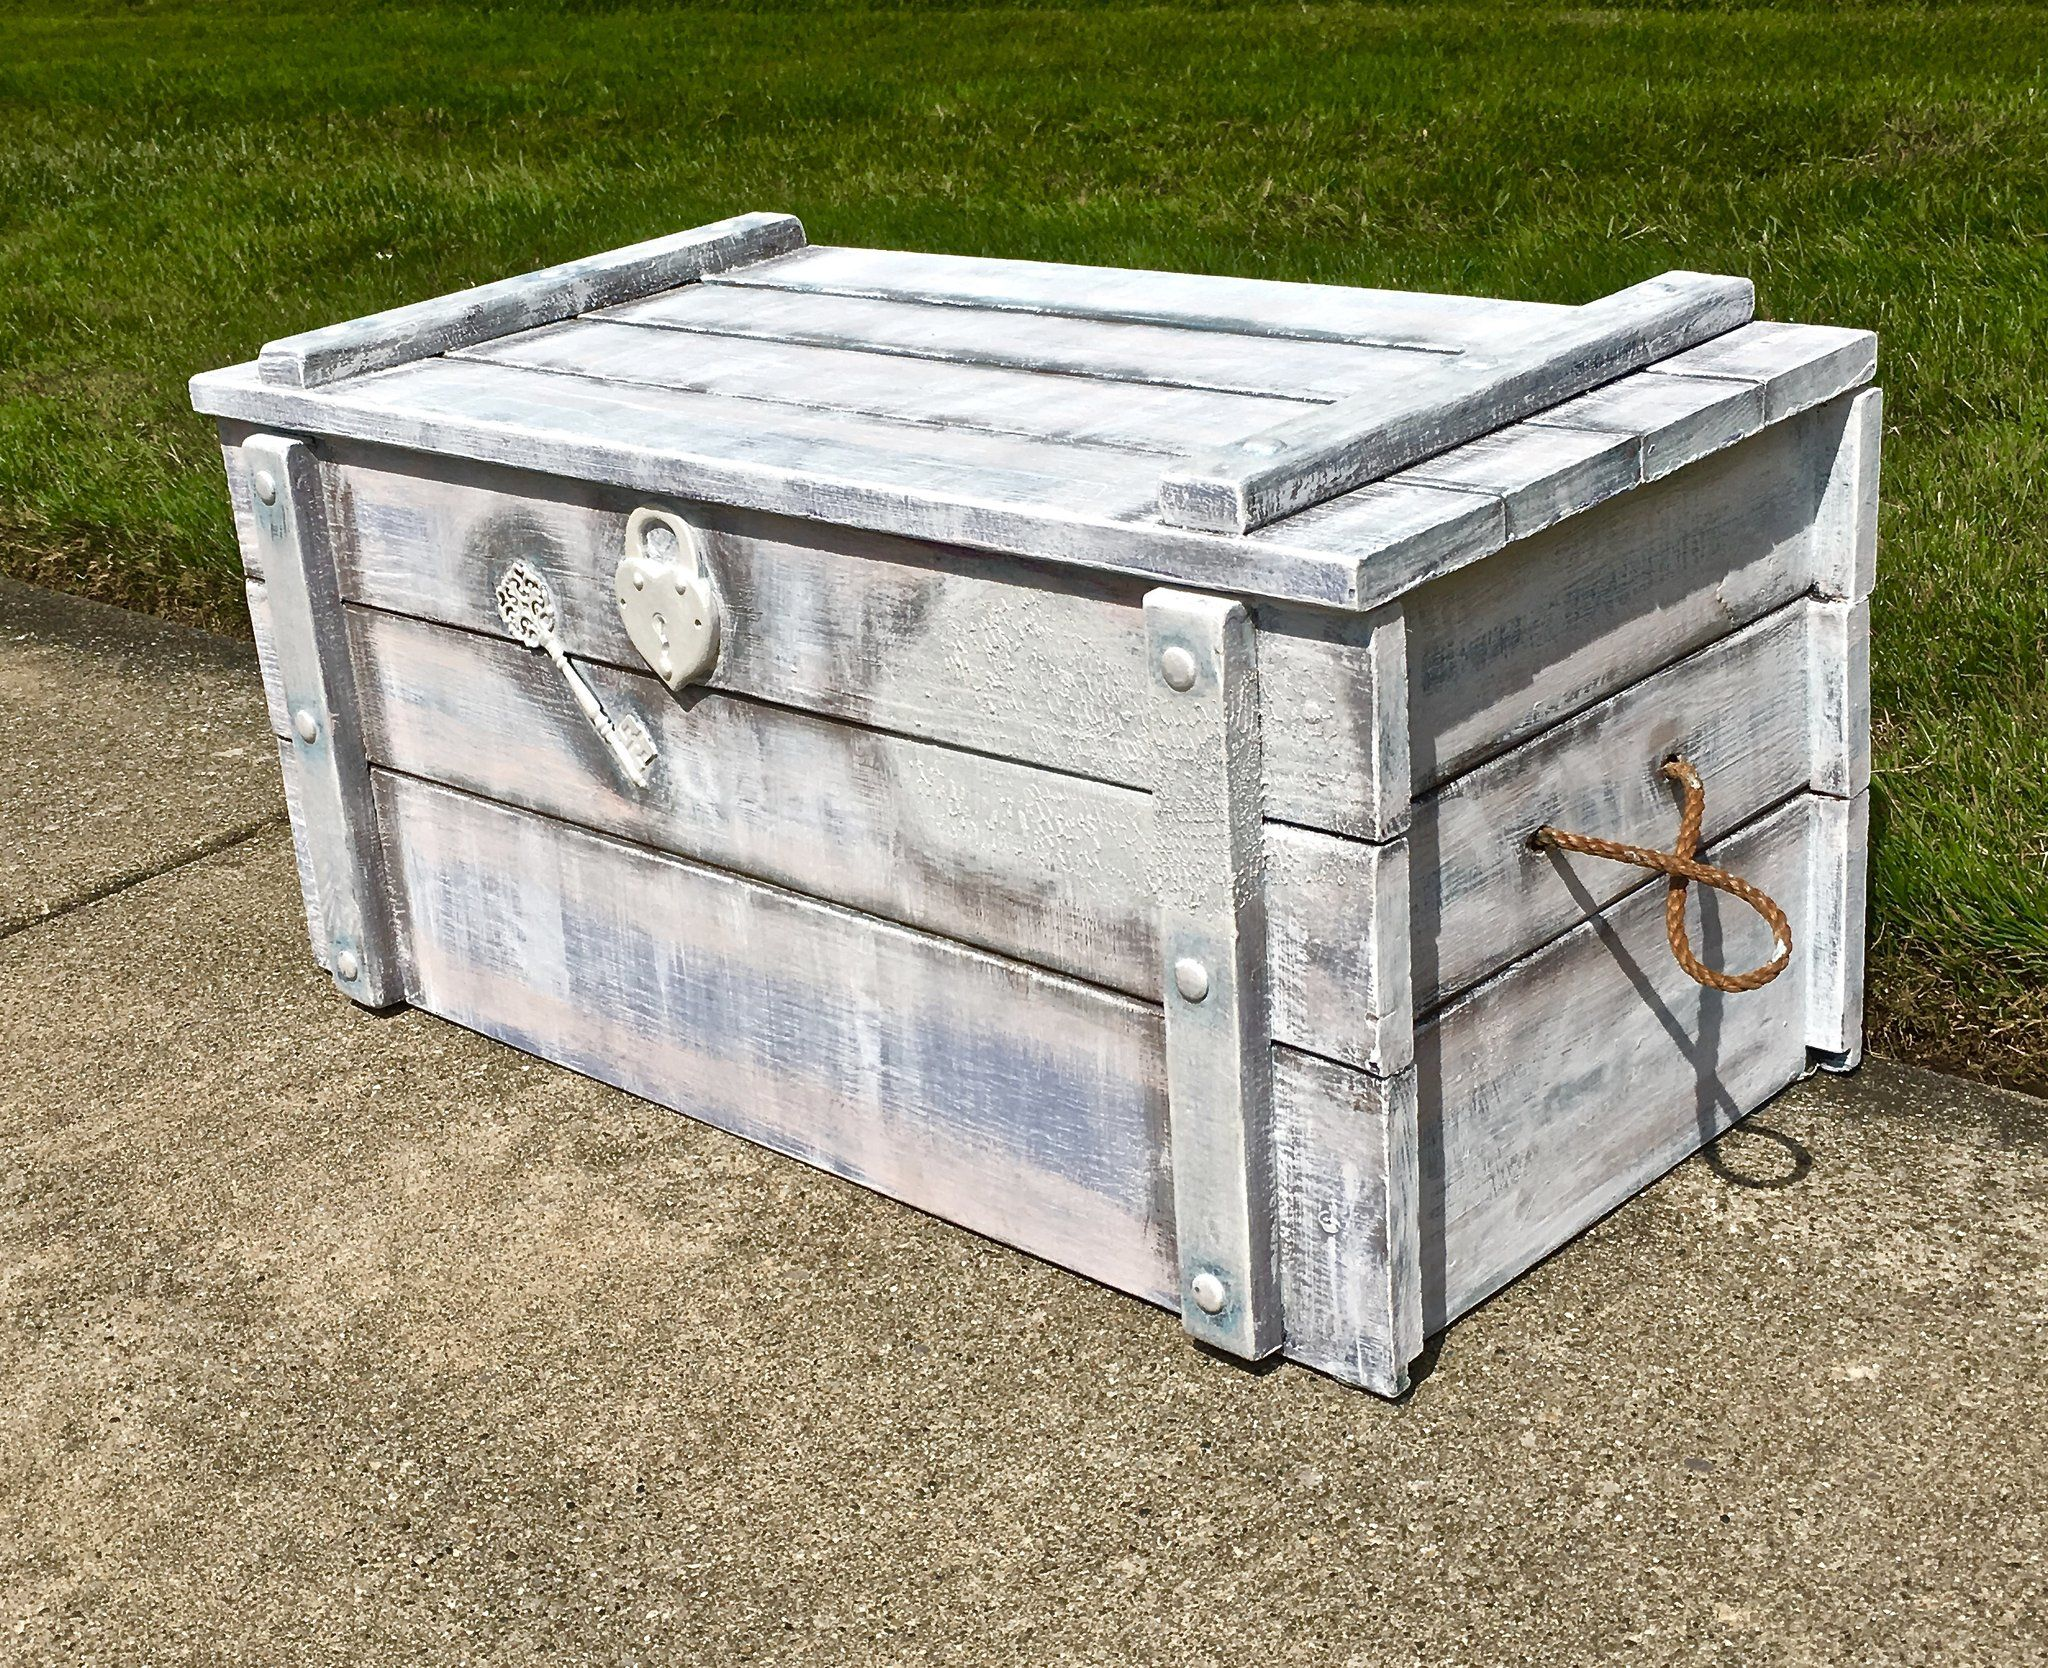 Treasure Hope Chest For Blanket Storage Or Toy Box That Is Custom Made In Chalk Paint Colors And Persona Shoe Box Storage Painted Toy Boxes